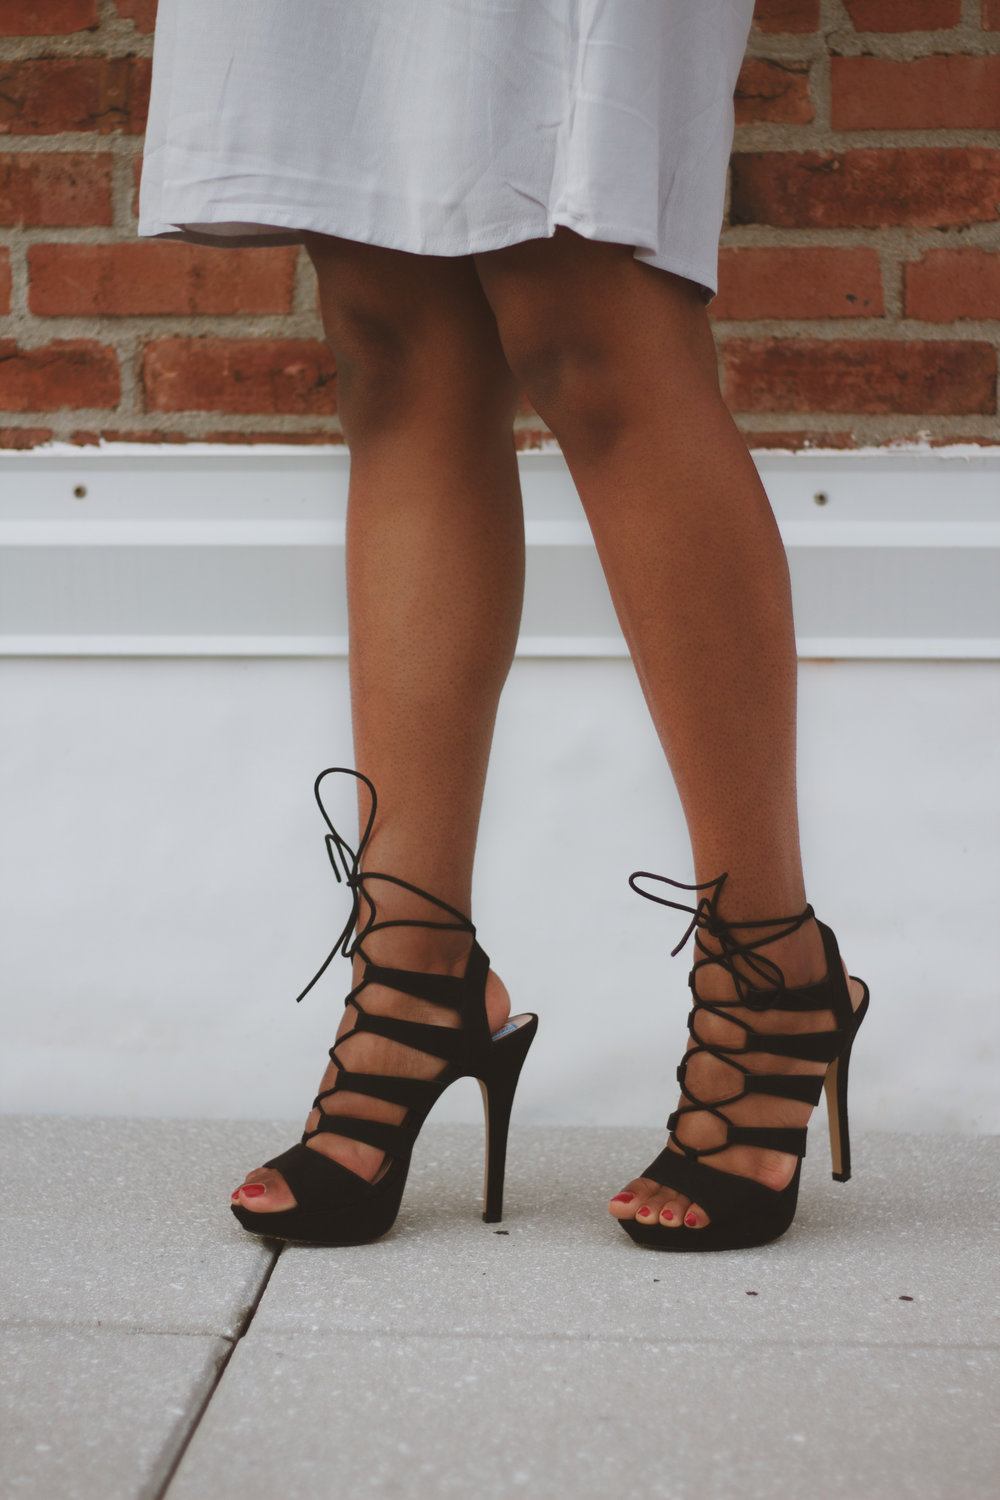 black strappy heeels by steven maddedn